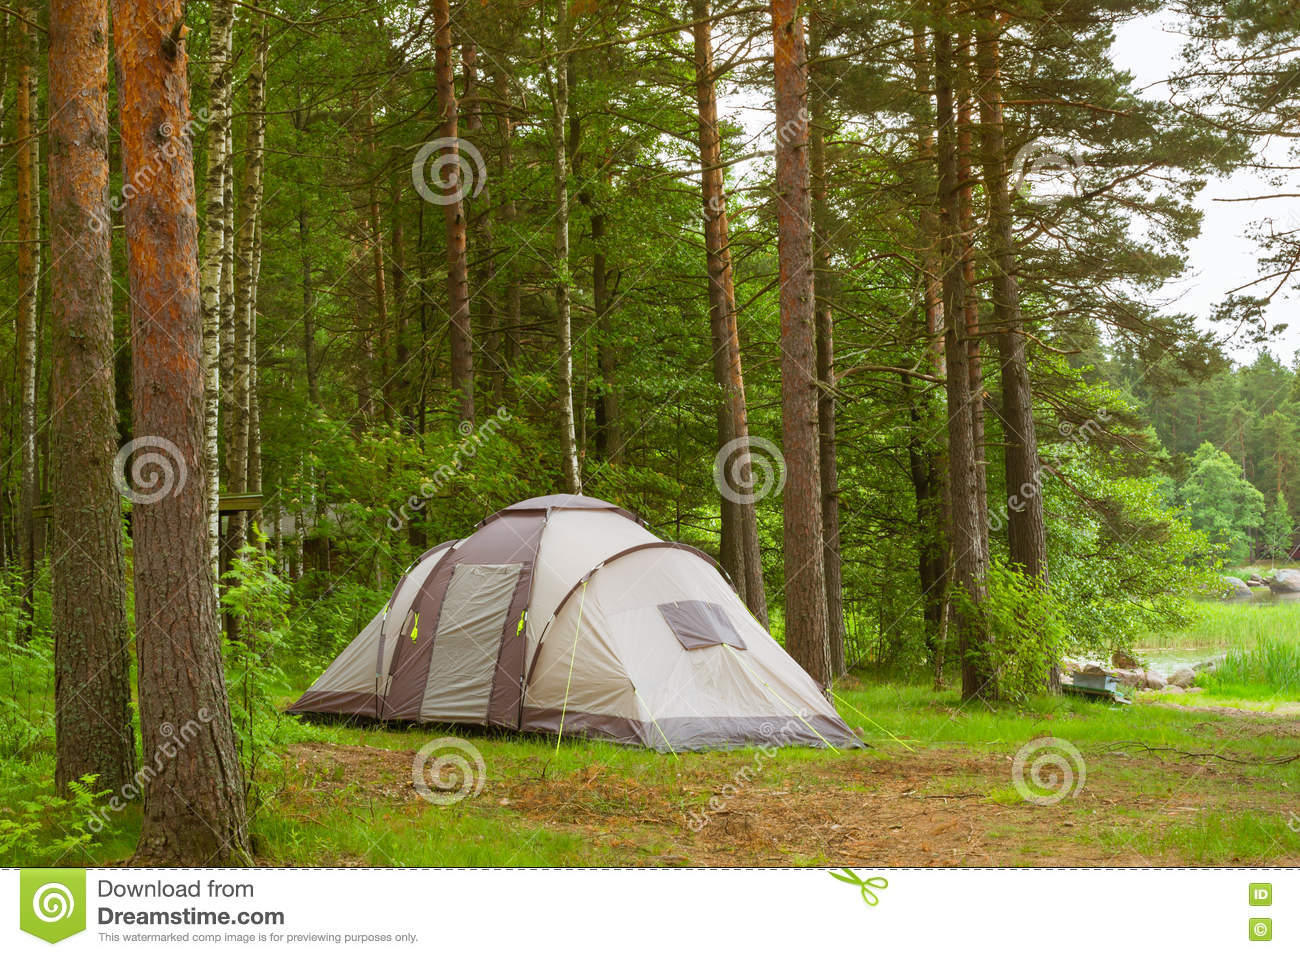 Camping in Finland: civilized outdoor recreation 73